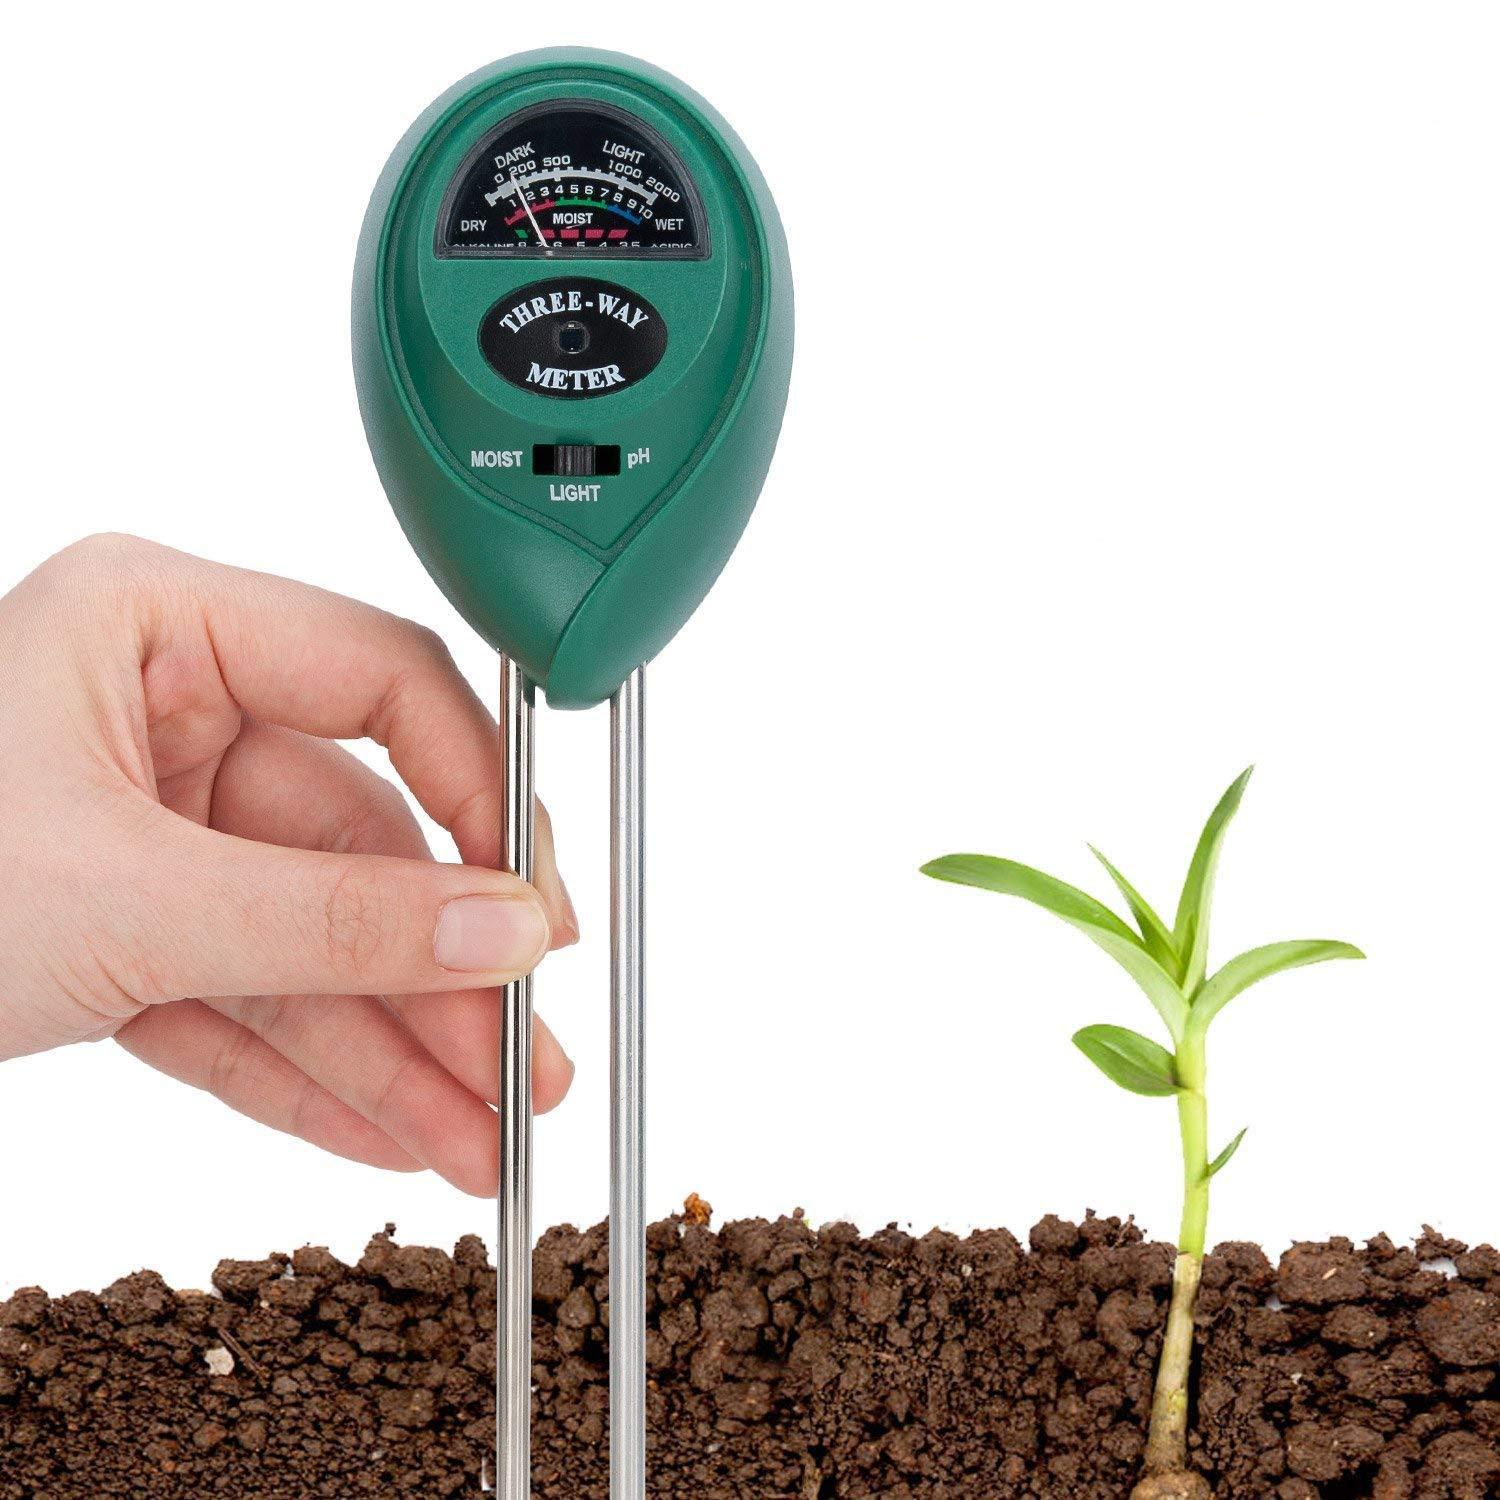 Covvy Soil Tester 3 in 1 Water Moisture Meter Acidity Humidity Light Probe Test Kit Gardening Tools for Home Lawn Farm Indoor or Outdoor Plant Care